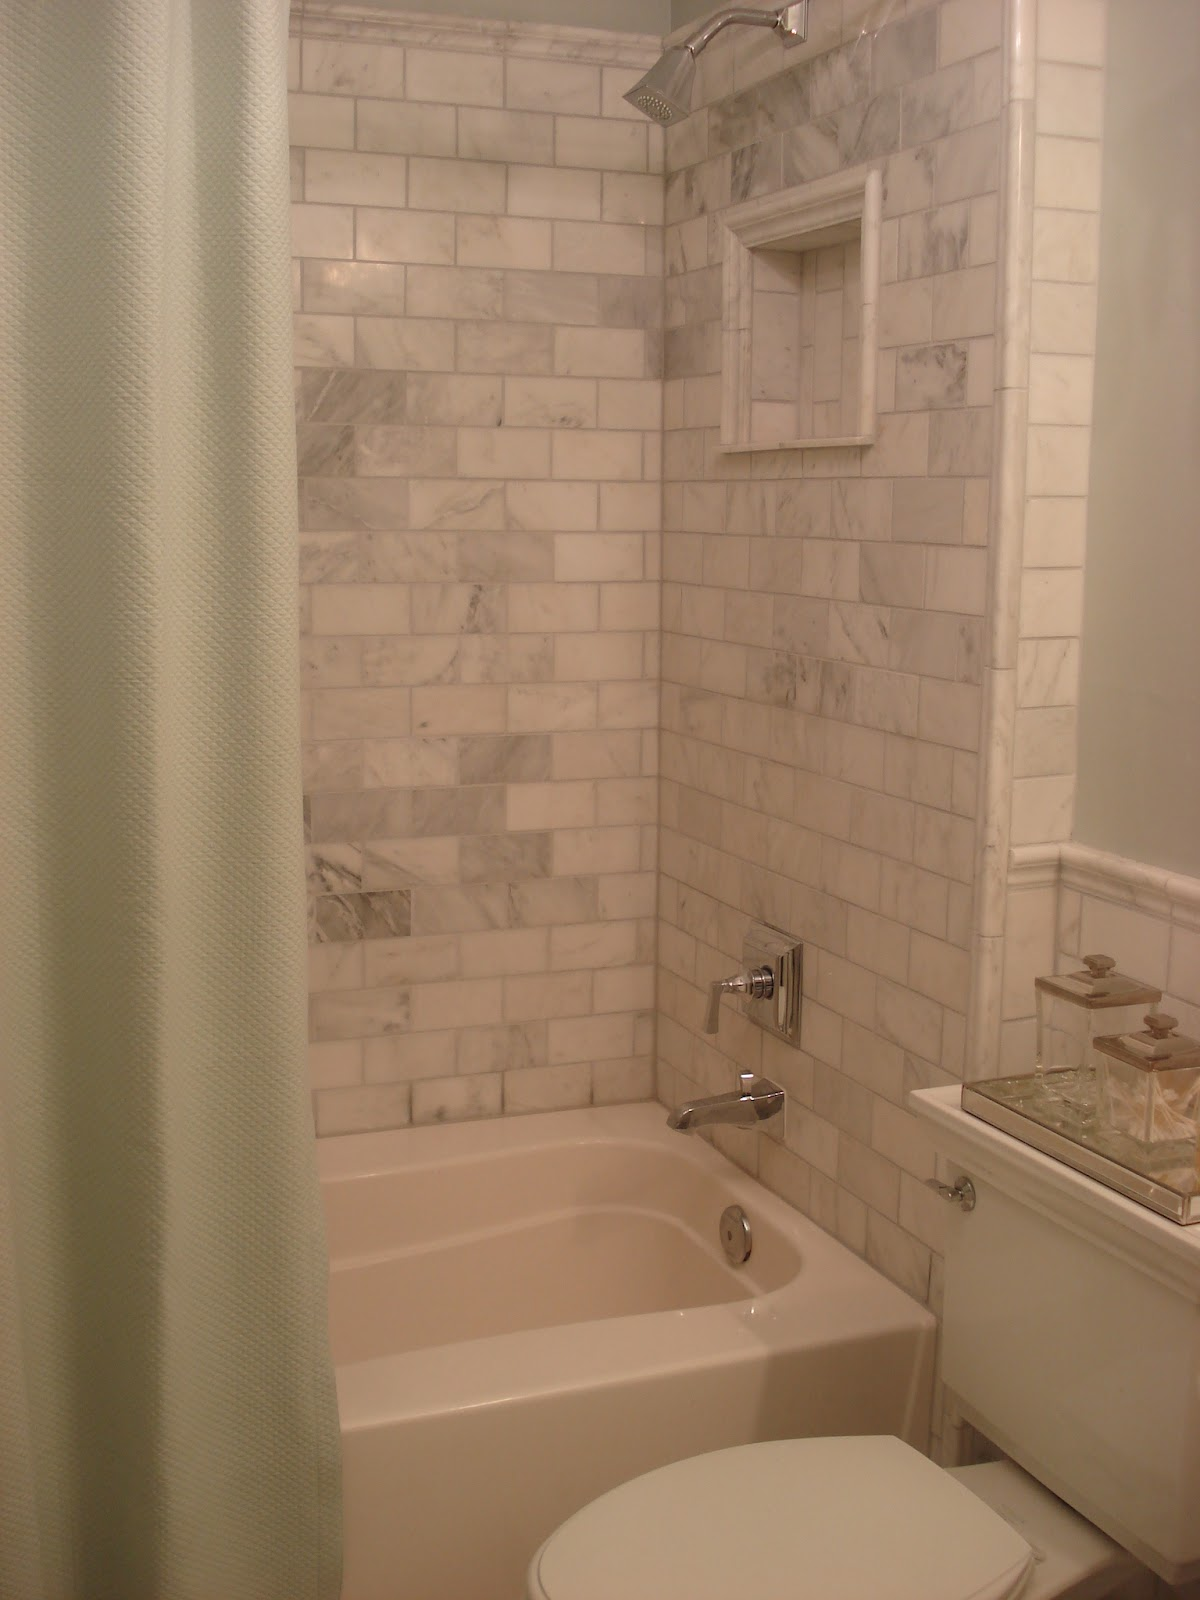 Cool I wrote about the bathroom renovation in July of a few months after it was pleted I loved the final result